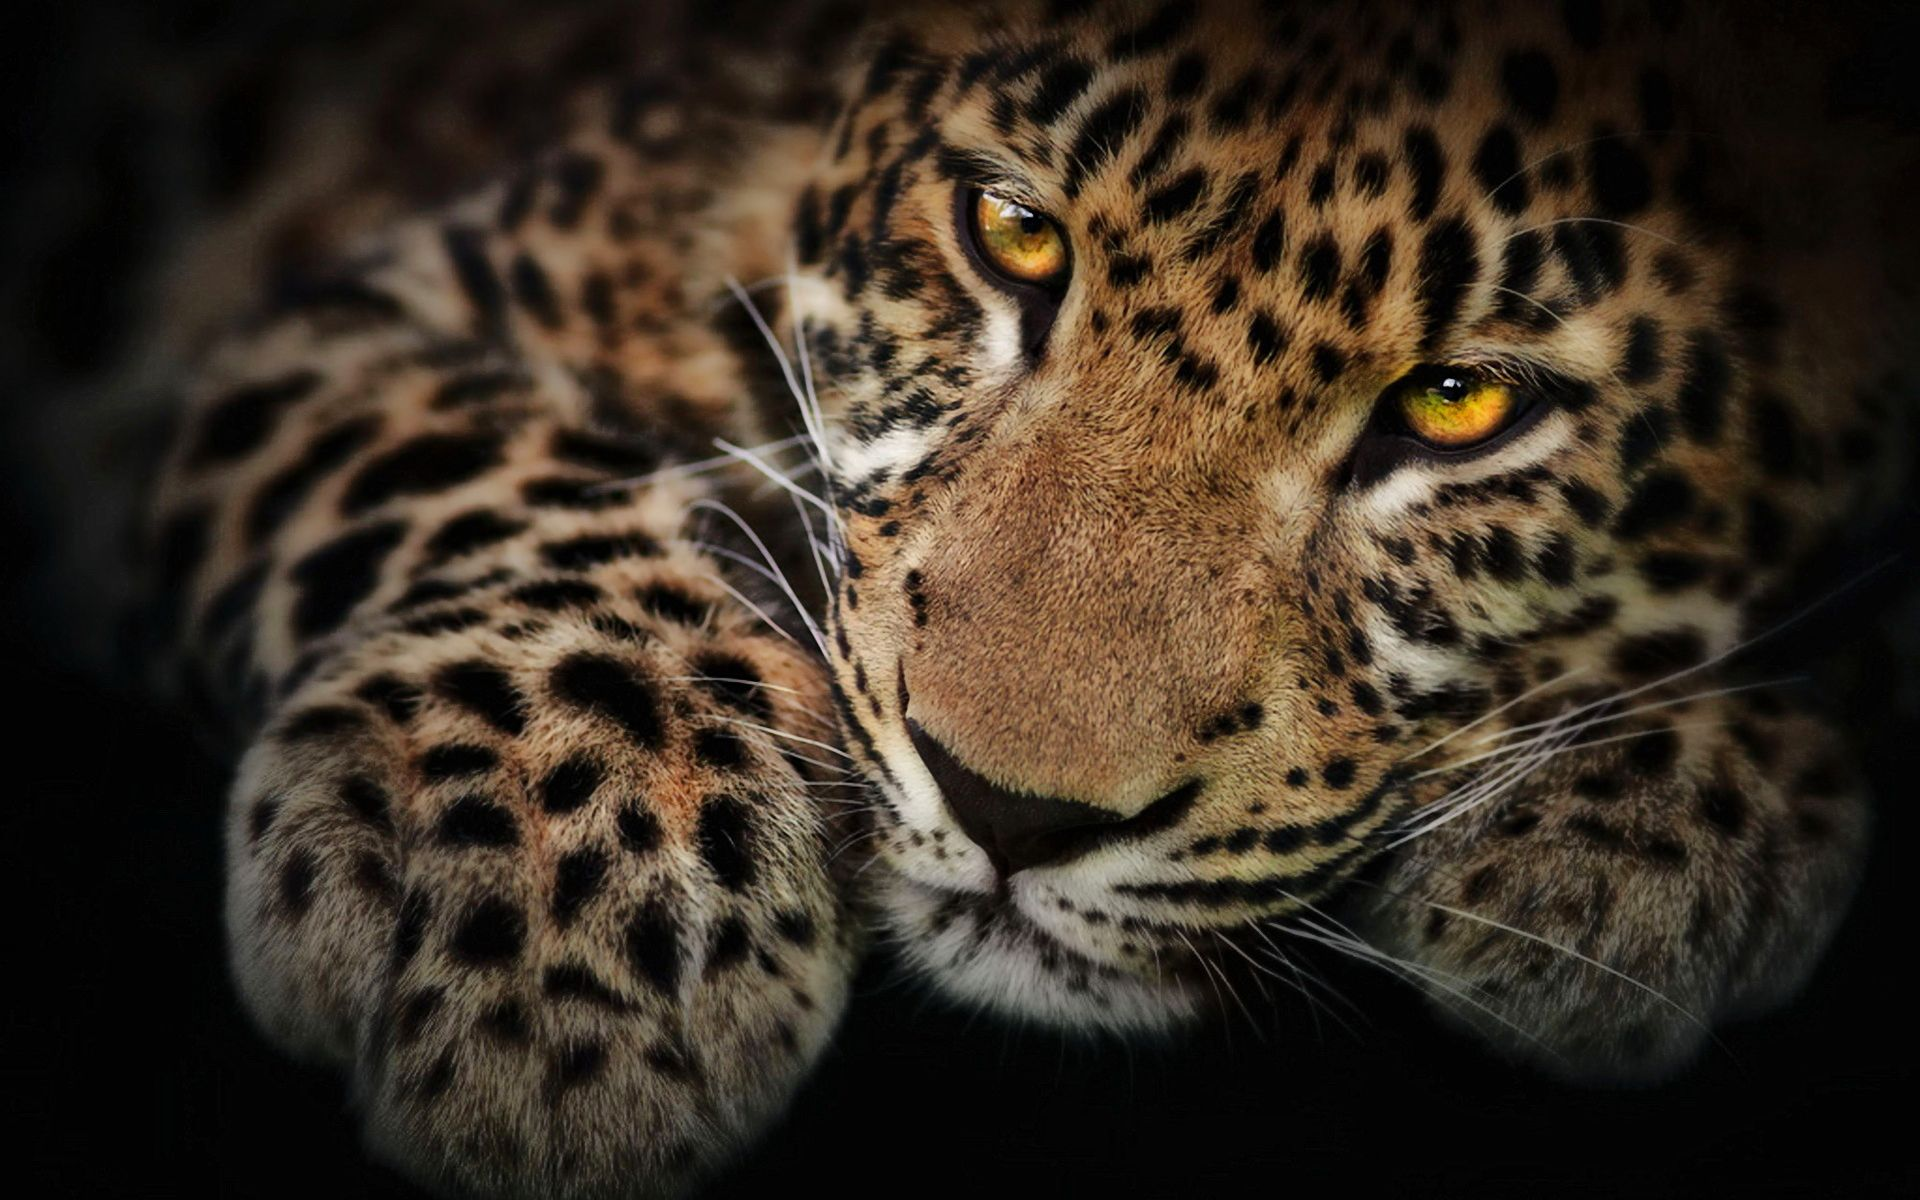 Black jaguar vs black leopard wallpaper beautiful creatures the most awesome hd wallpaper of wild animals regarding provide cozy wild wallpapers wallpapers voltagebd Image collections